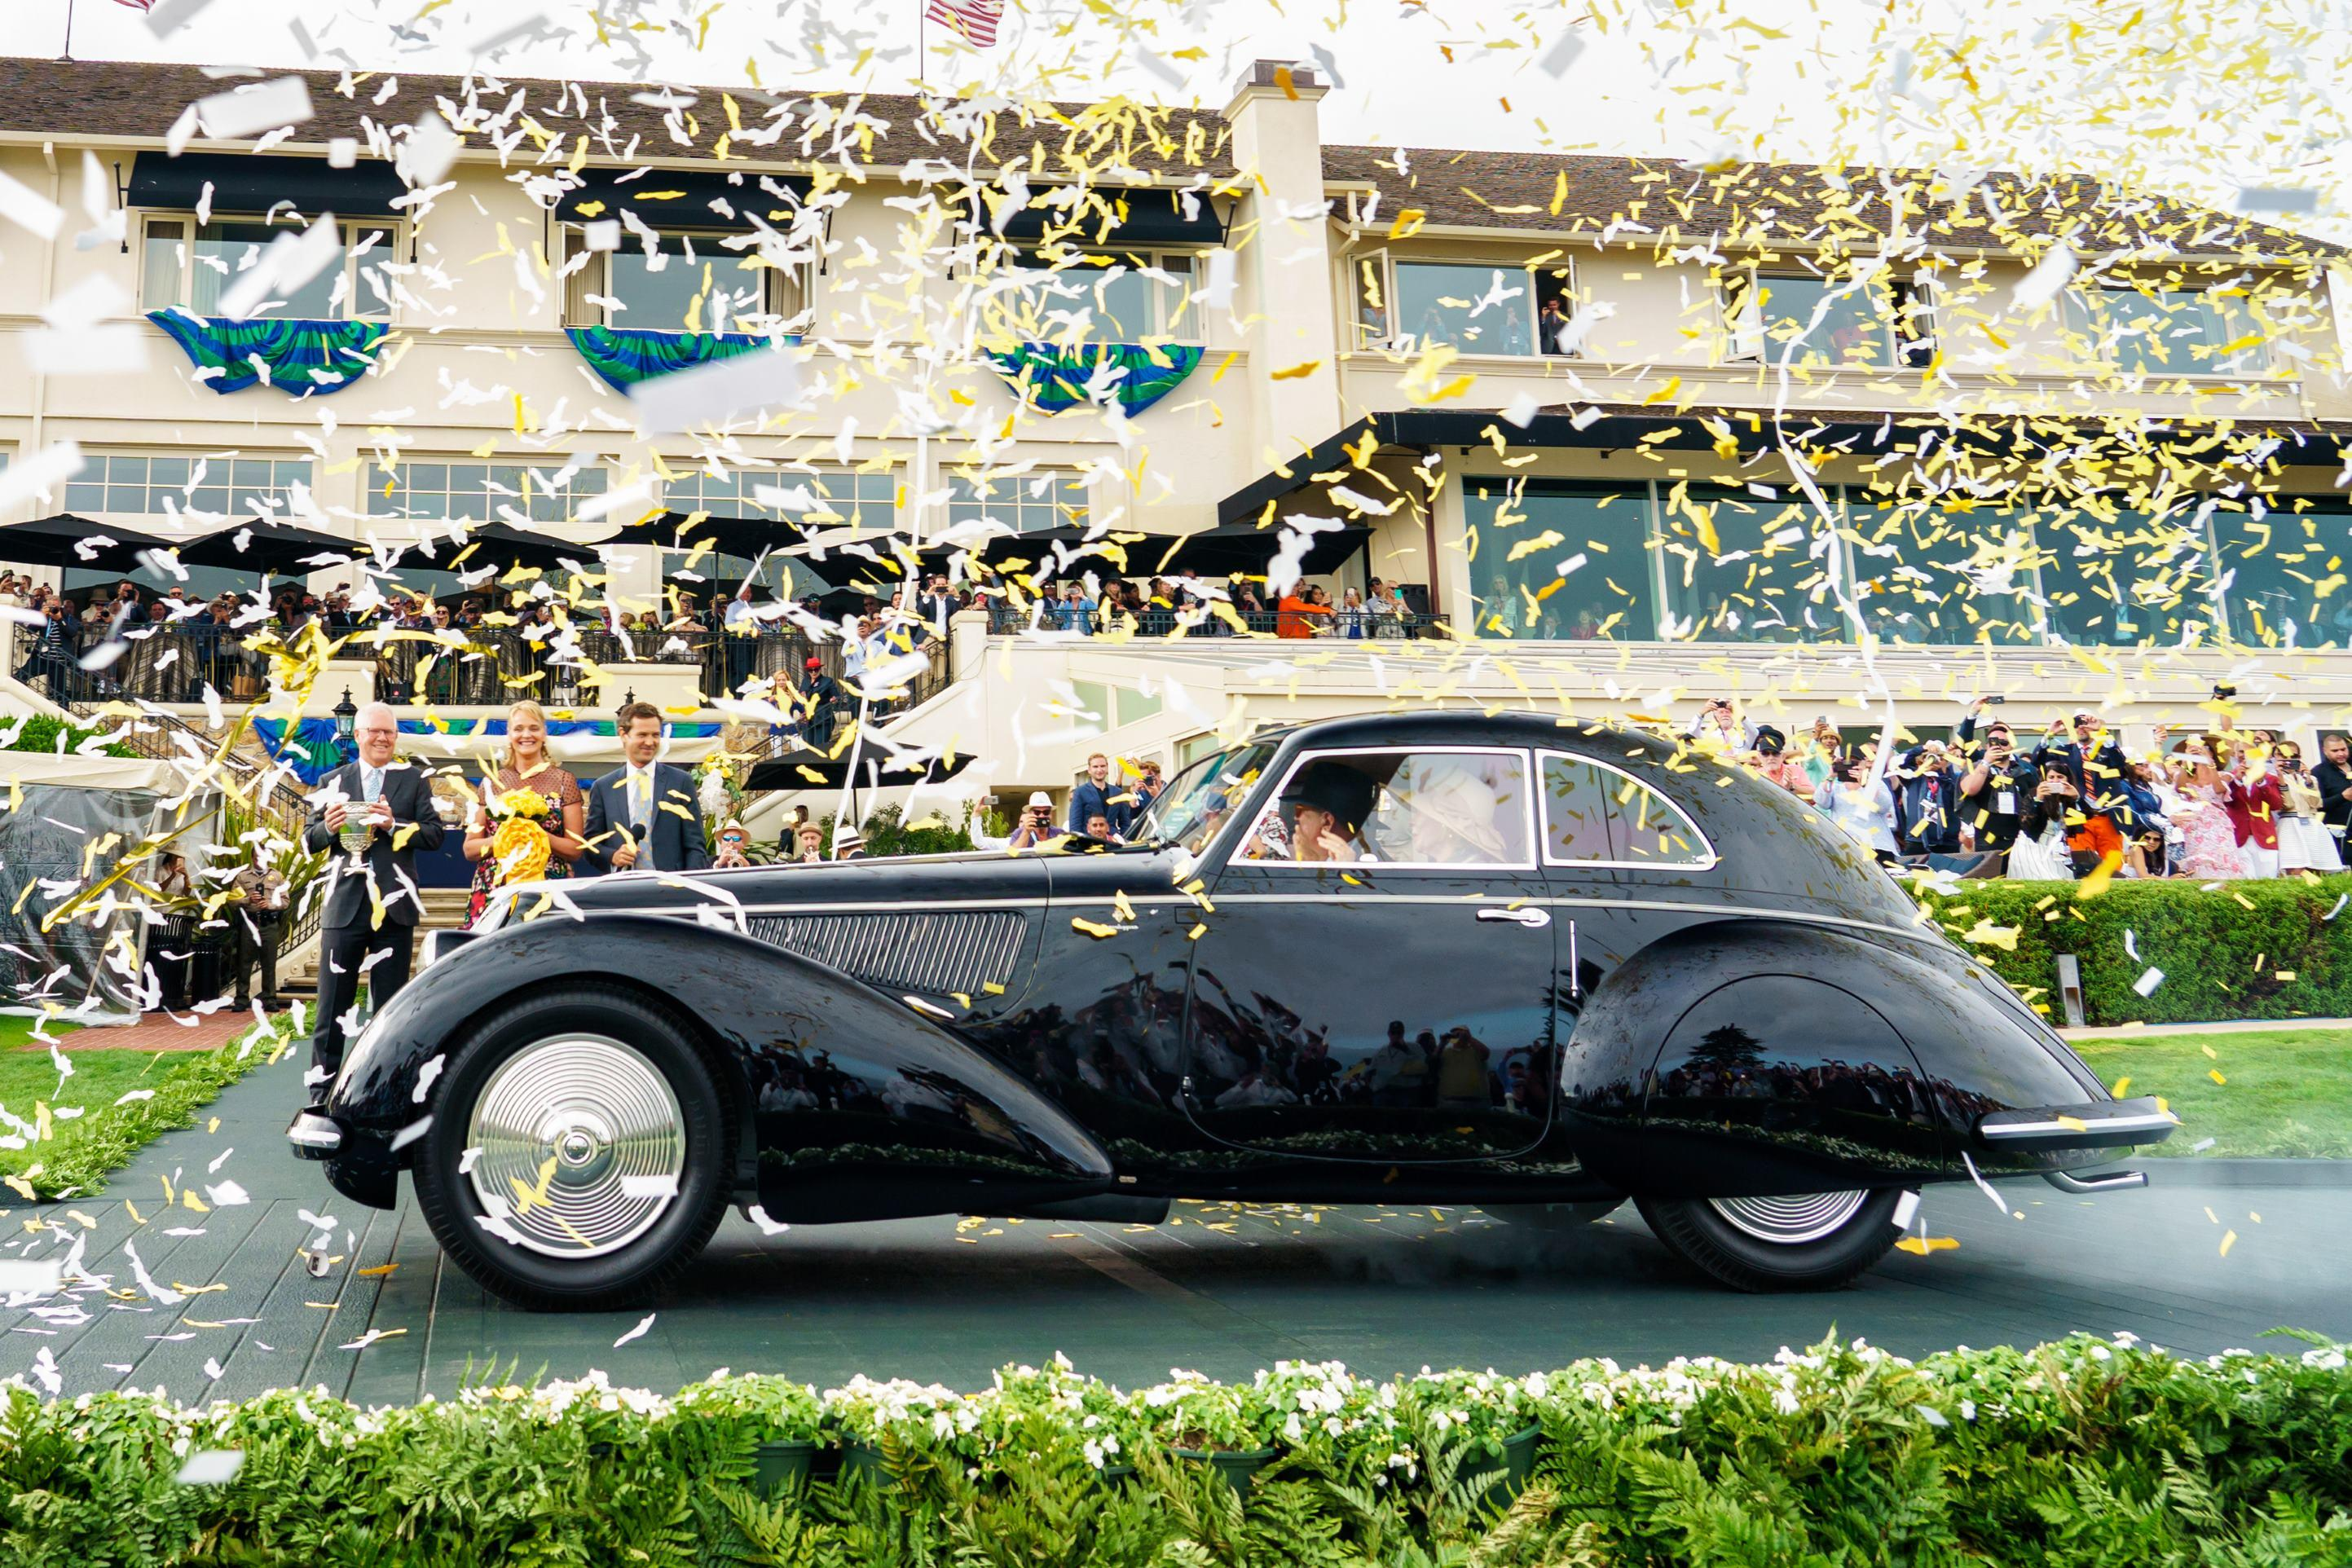 Concours D Elegance >> A 1937 Alfa Romeo Wins Best Of Show At Pebble Beach Concours D Elegance